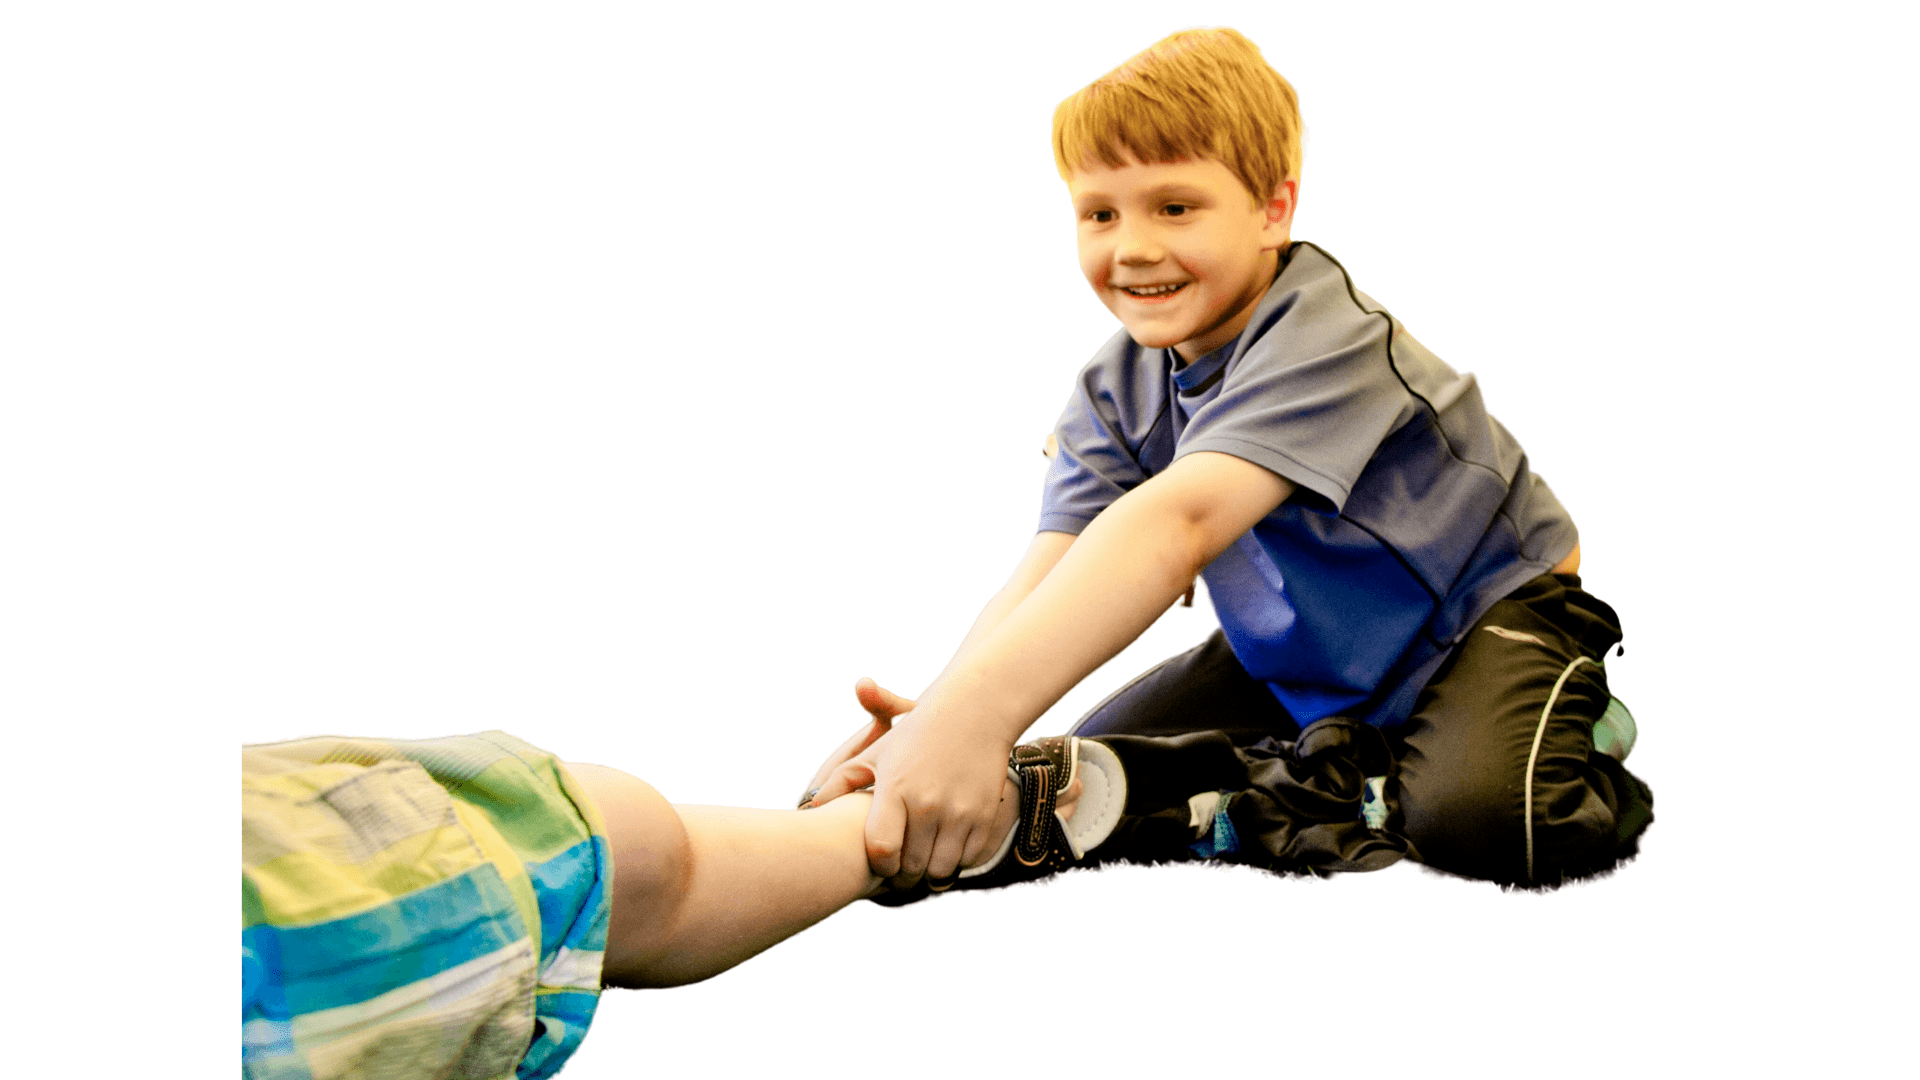 Activity-Based Childcare